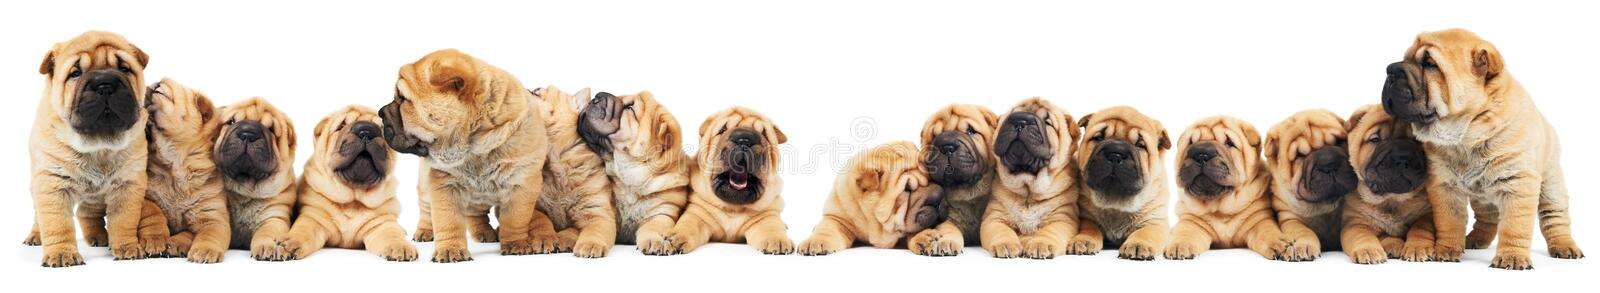 Brood of sharpei puppies dogs royalty free stock photography